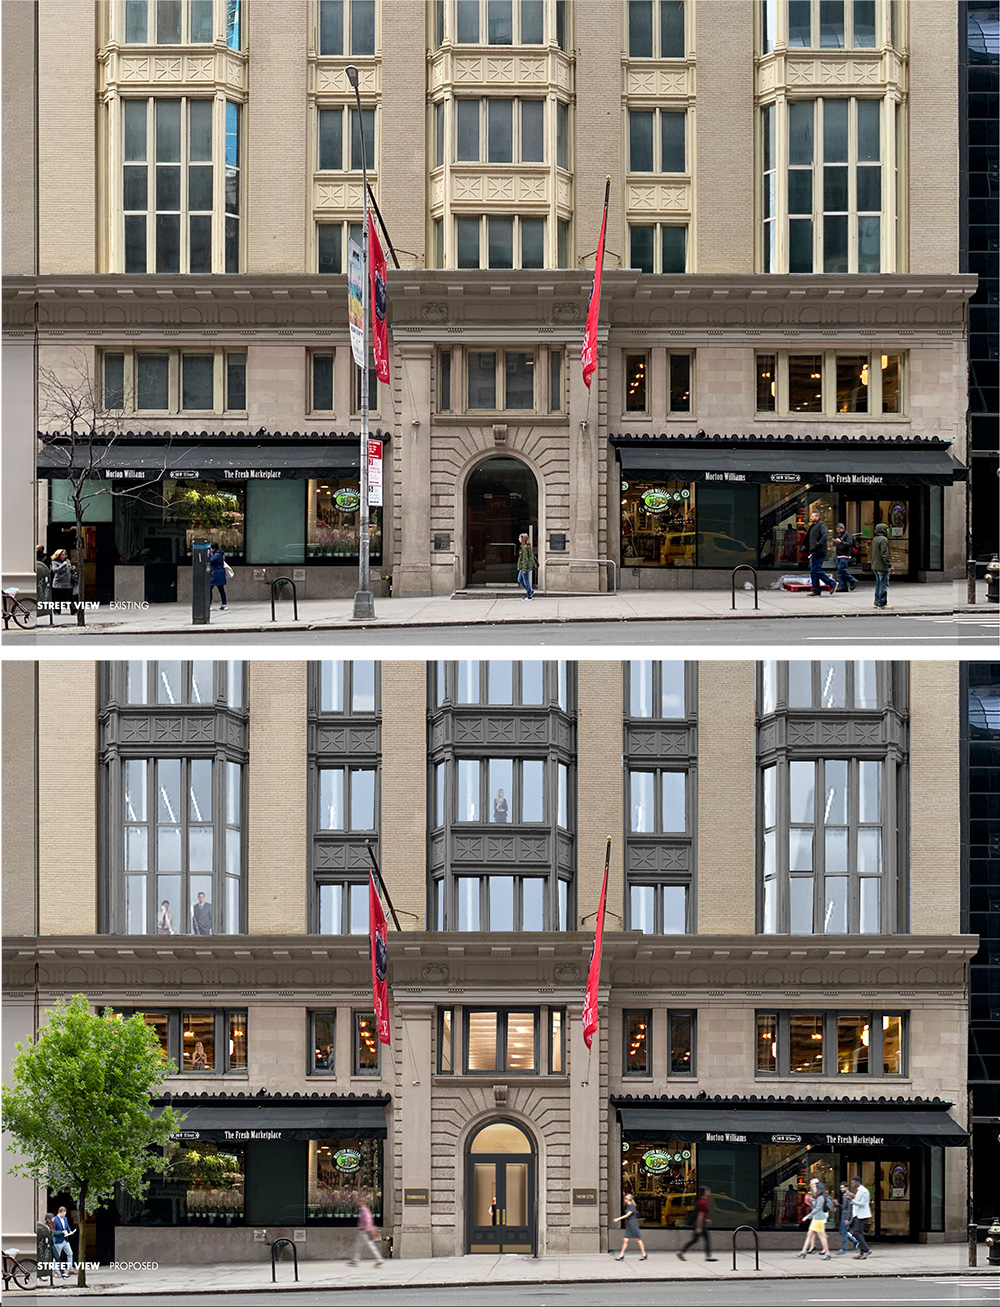 Existing conditions (top) and proposed renderngs (bottom) of lower level facade of The Office Townhouse at 140 West 57th Street - MdeAS Architects